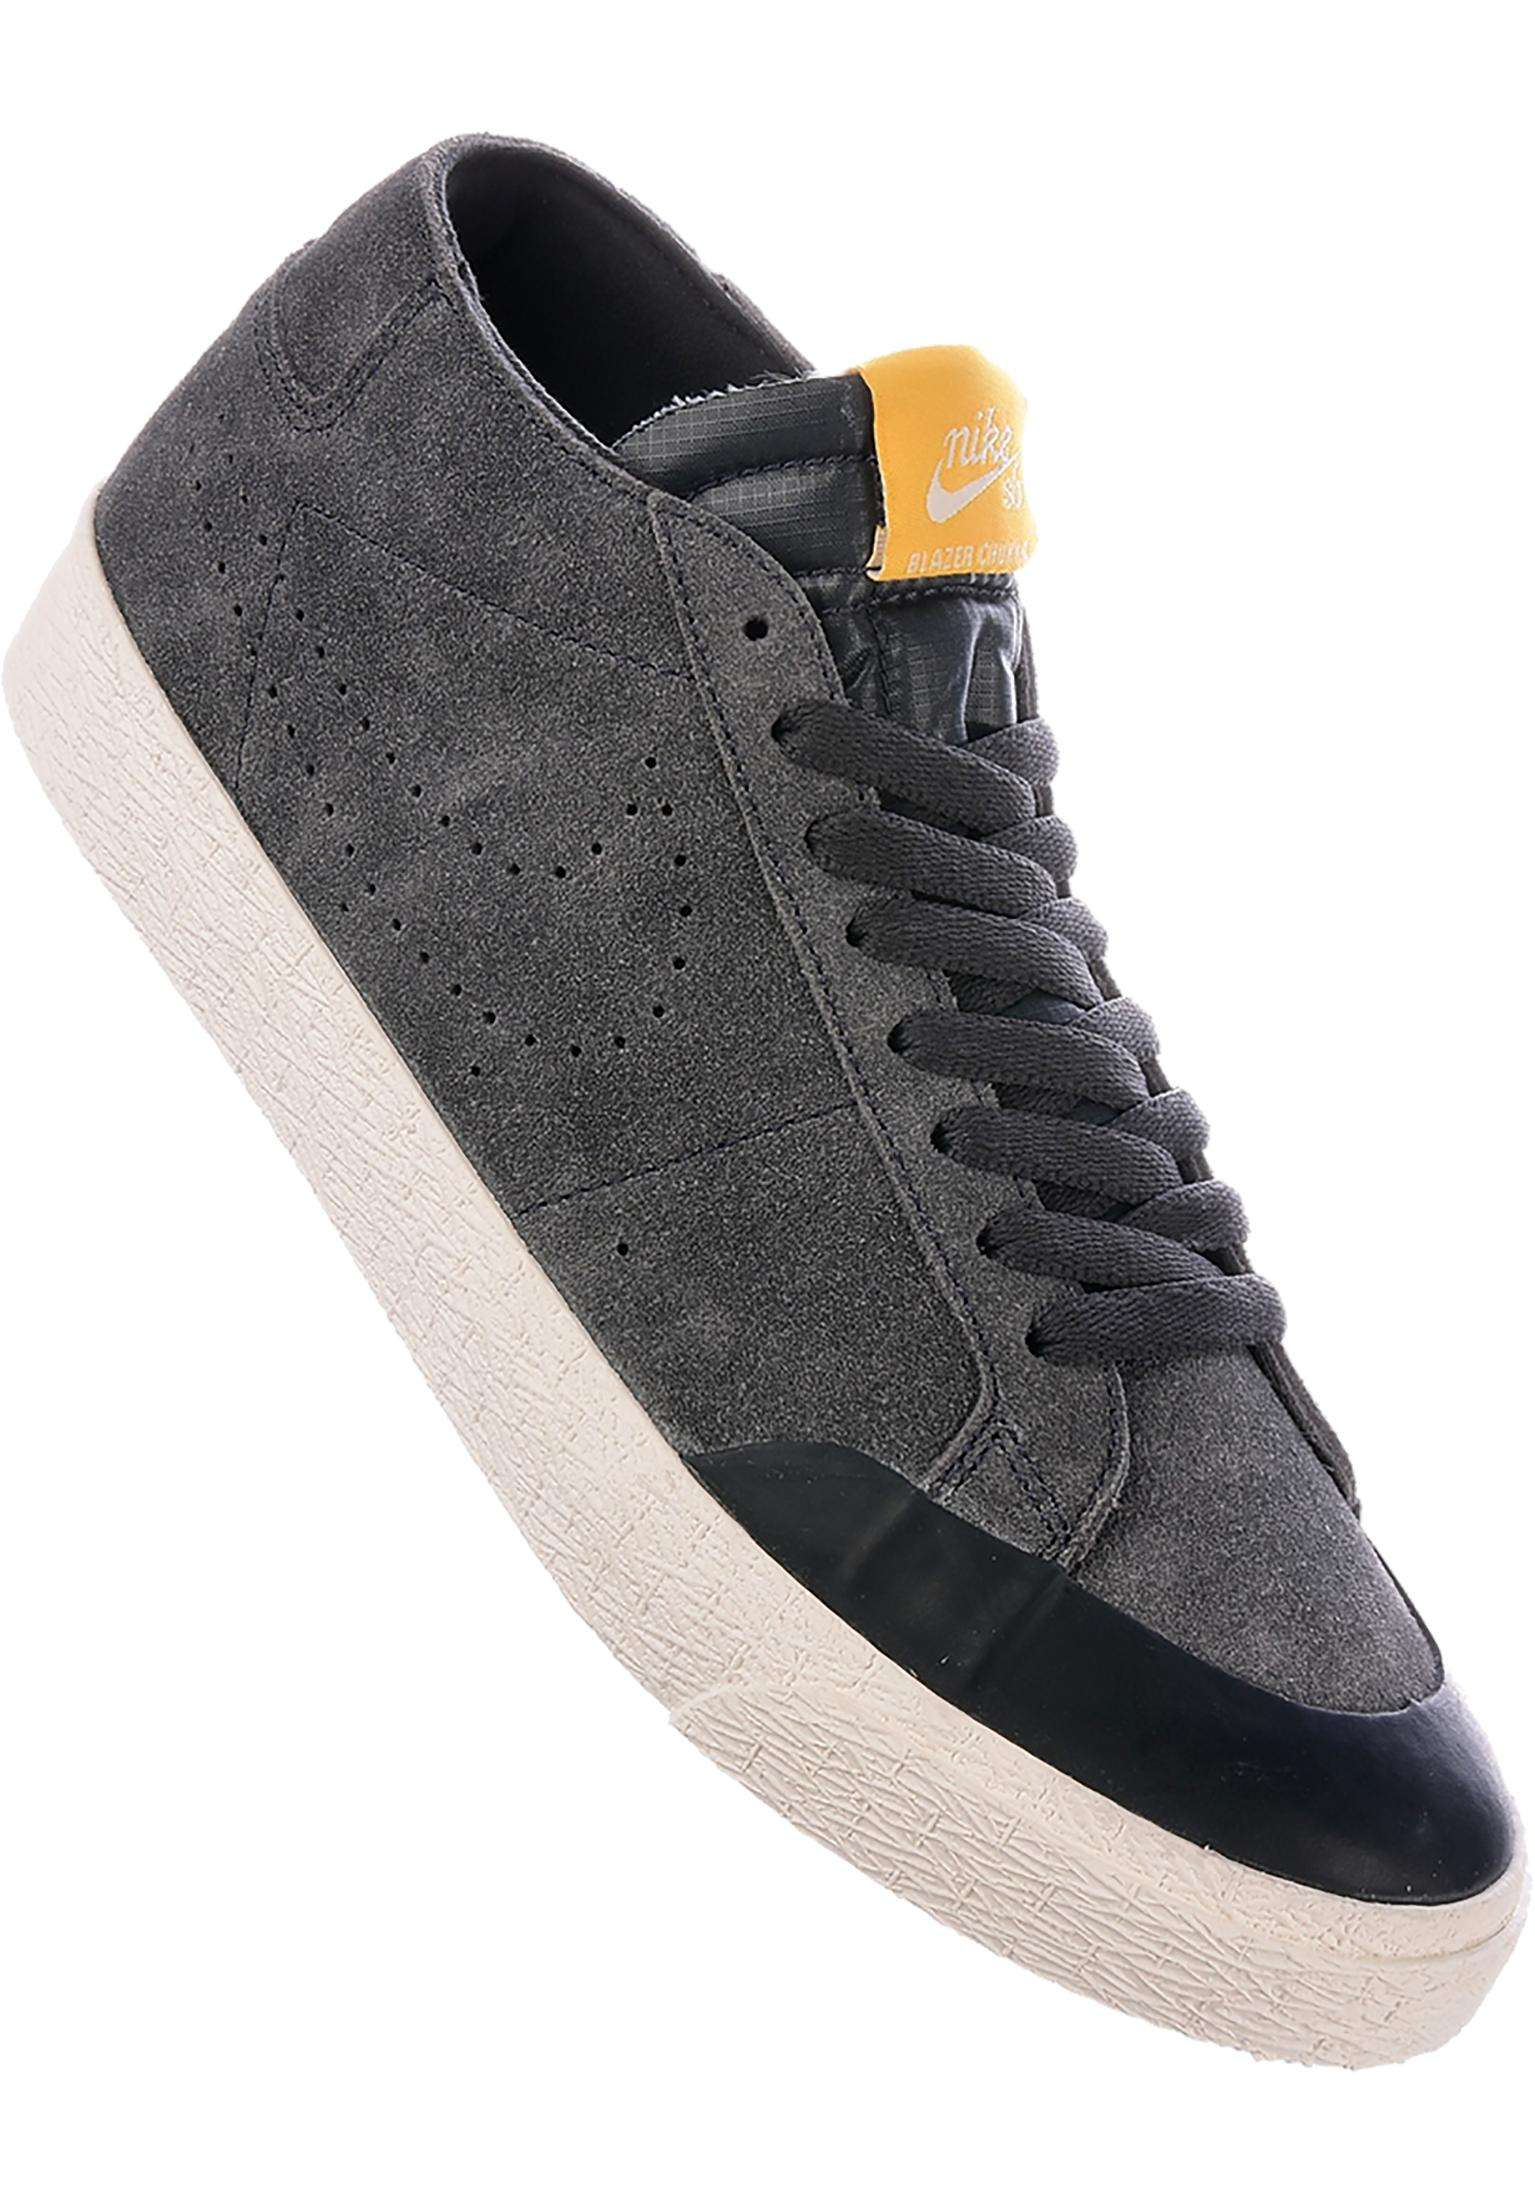 86a55f49c7c Zoom Blazer Chukka XT Nike SB All Shoes in anthracite-anthracite for Men